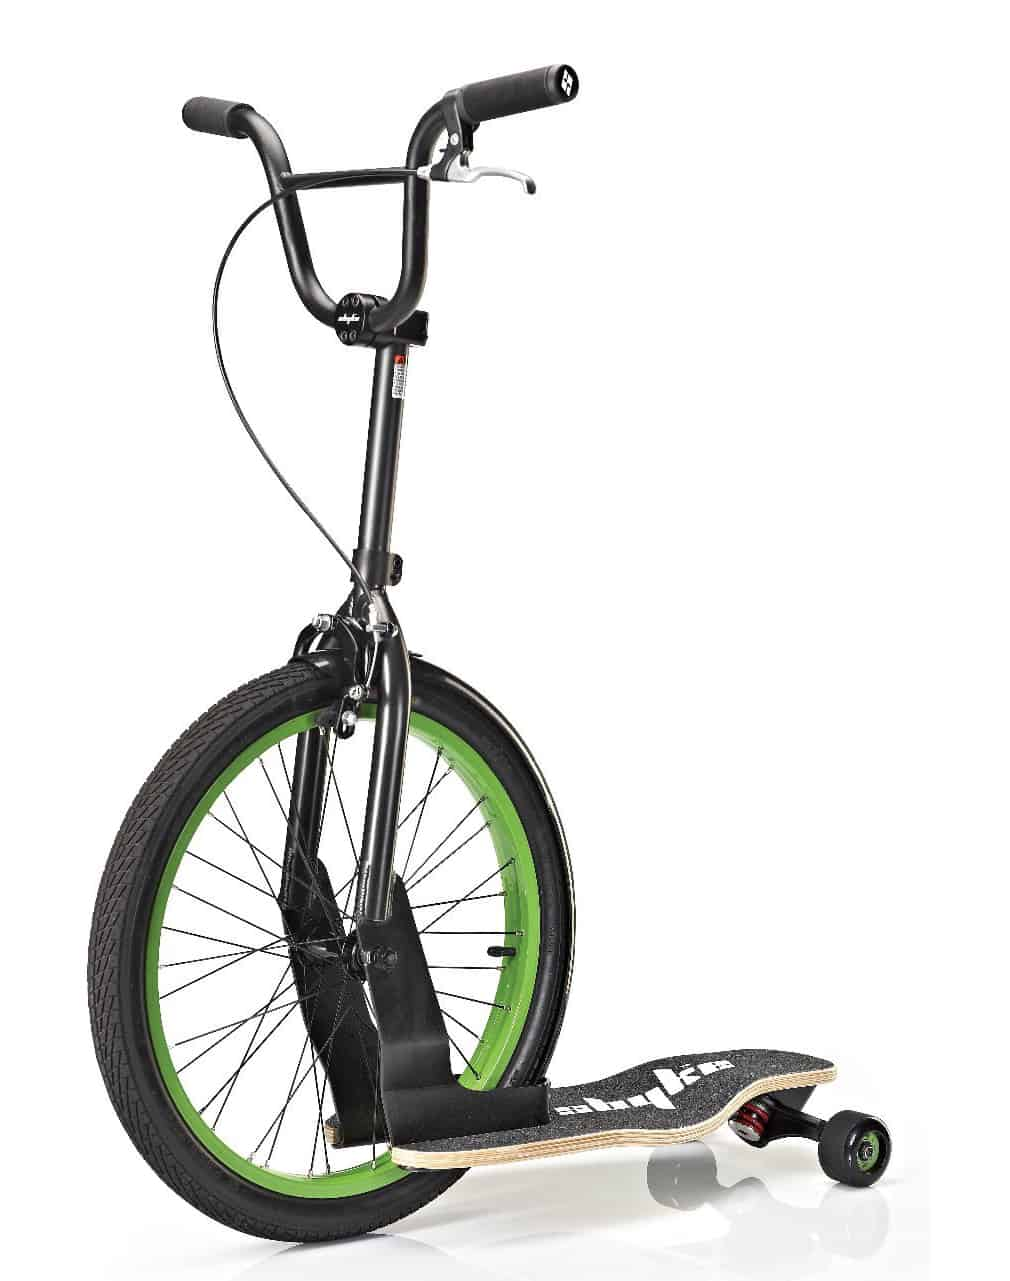 Sbyke P-20 Patented Rear-Steering Scooter Green Wheel